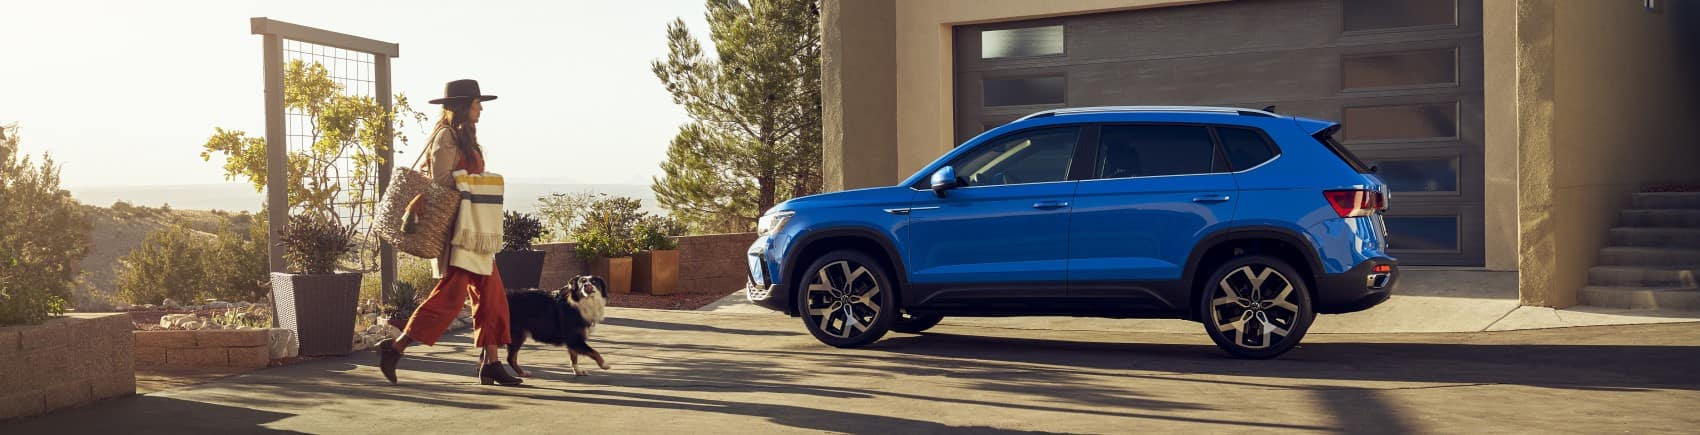 2022 Volkswagen Taos blue profile shot parked in driveway banner